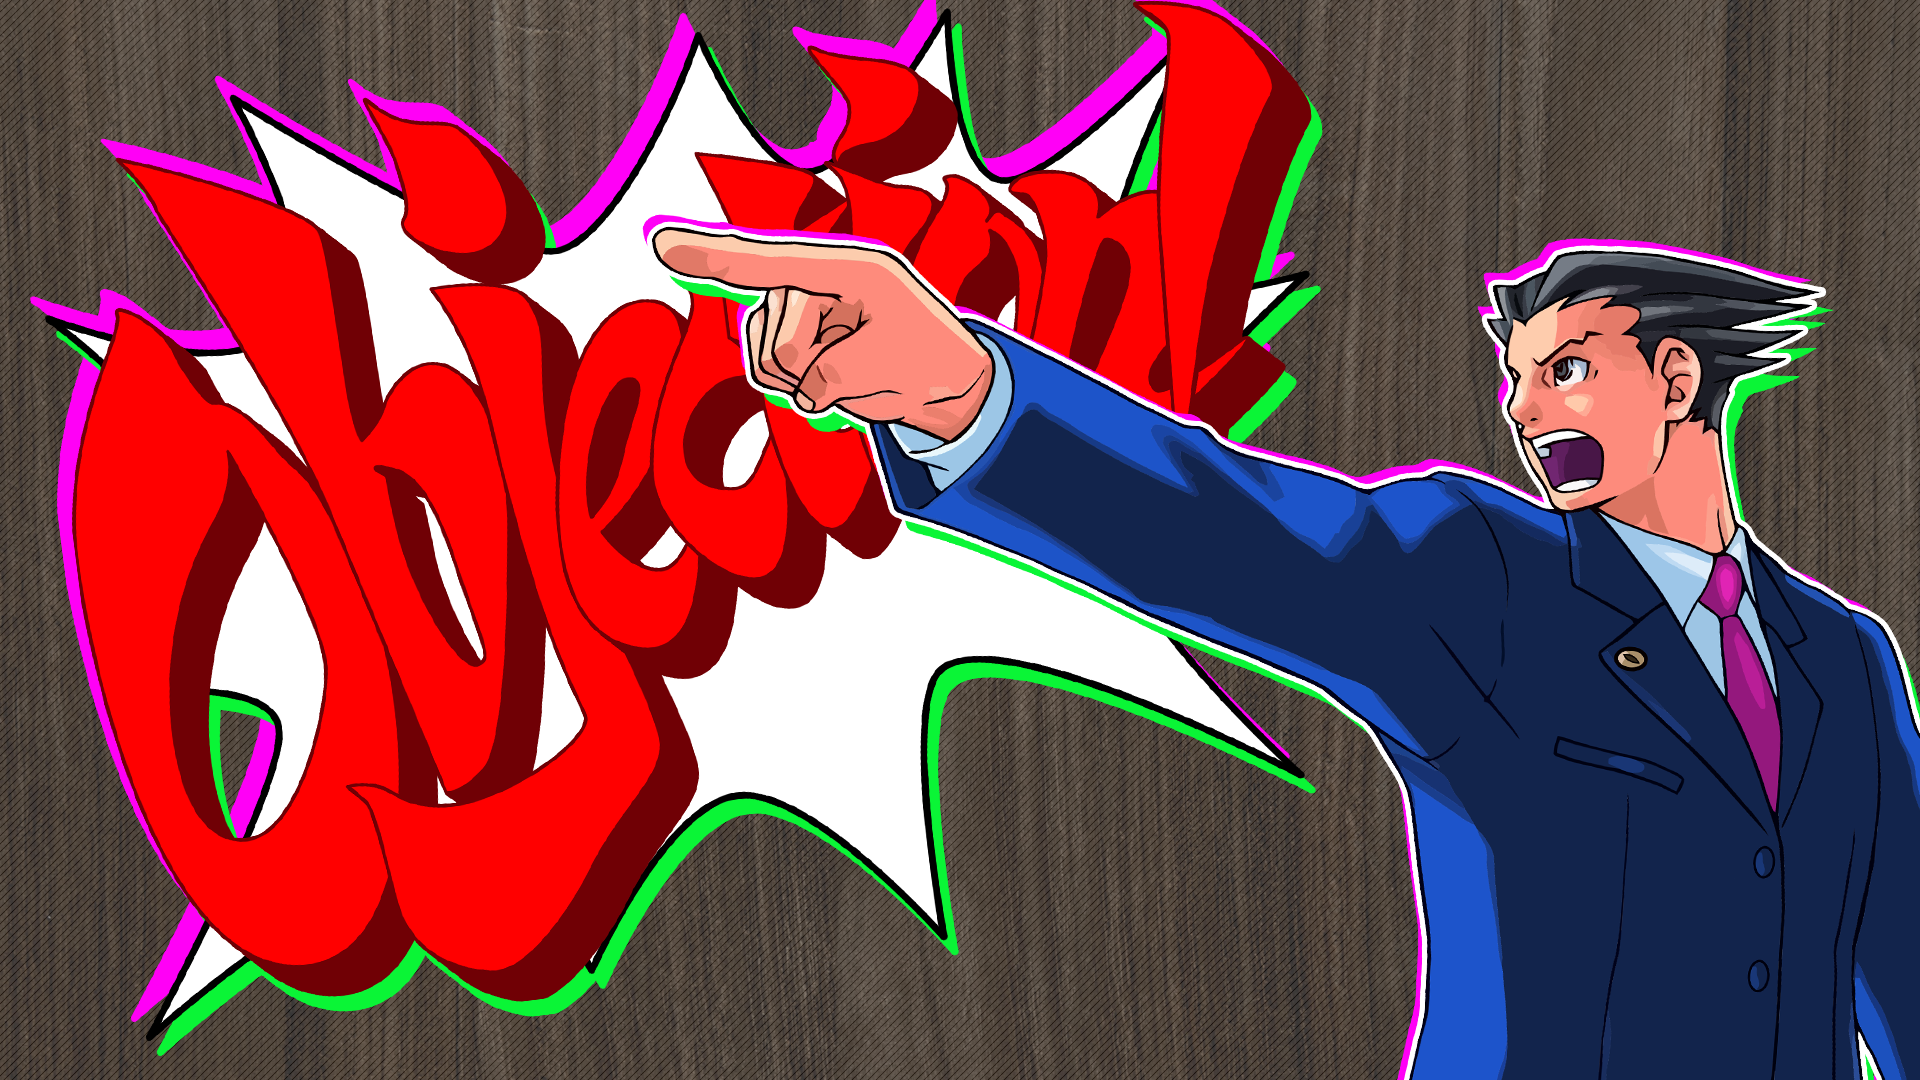 Phoenix Wright Ace Attorney Hd Wallpaper Background Image